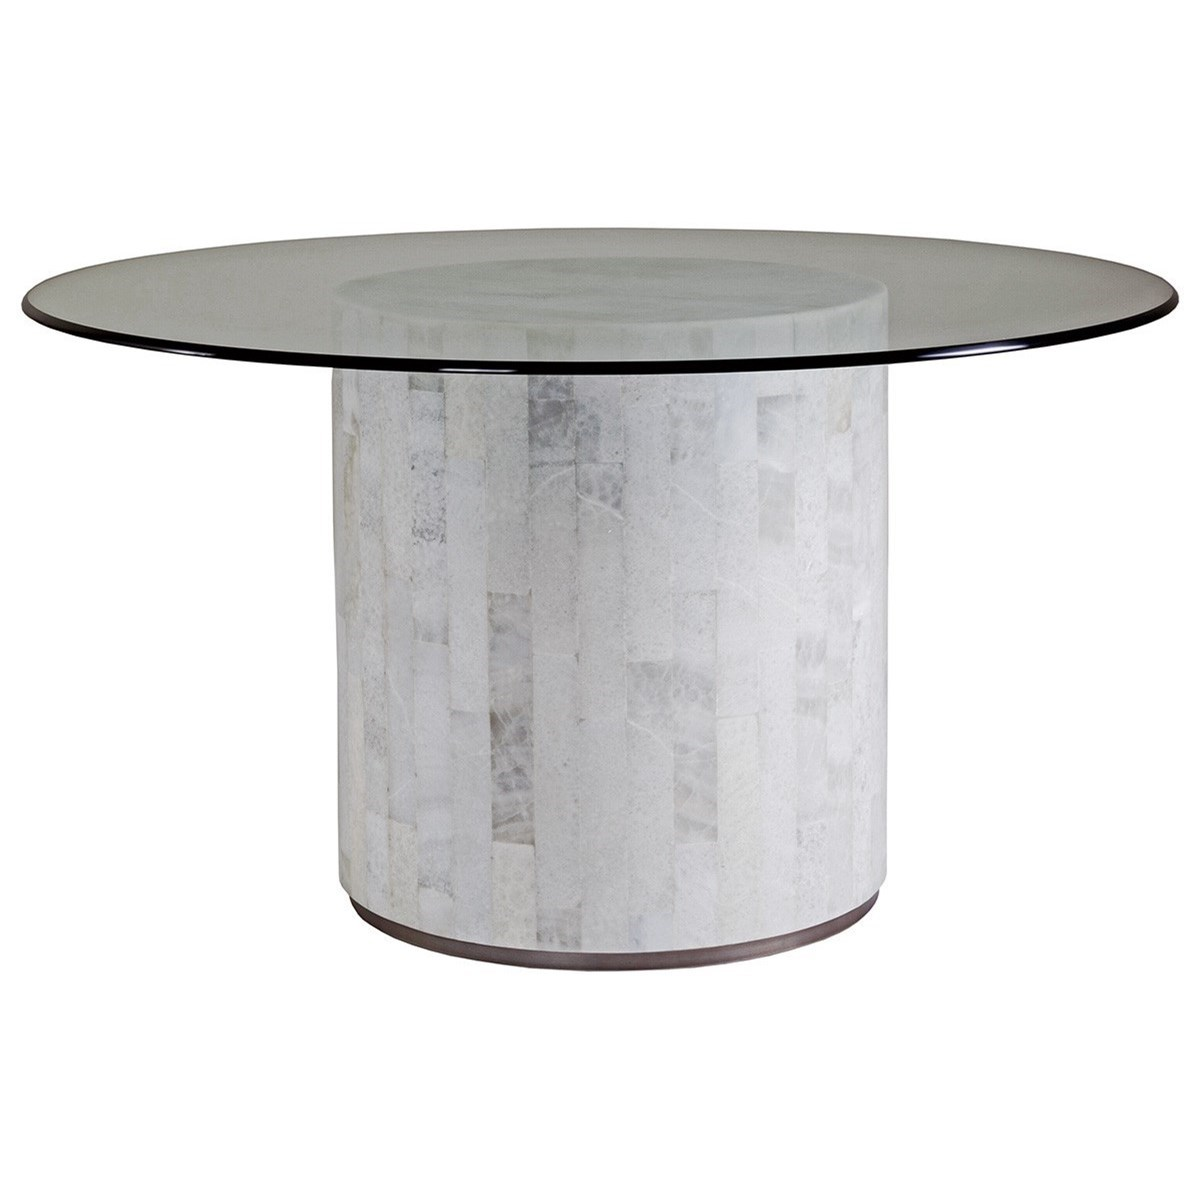 Artistica Greta Transitional White Onyx Dining Table With 56 Round Glass Top Sprintz Furniture Kitchen Tables